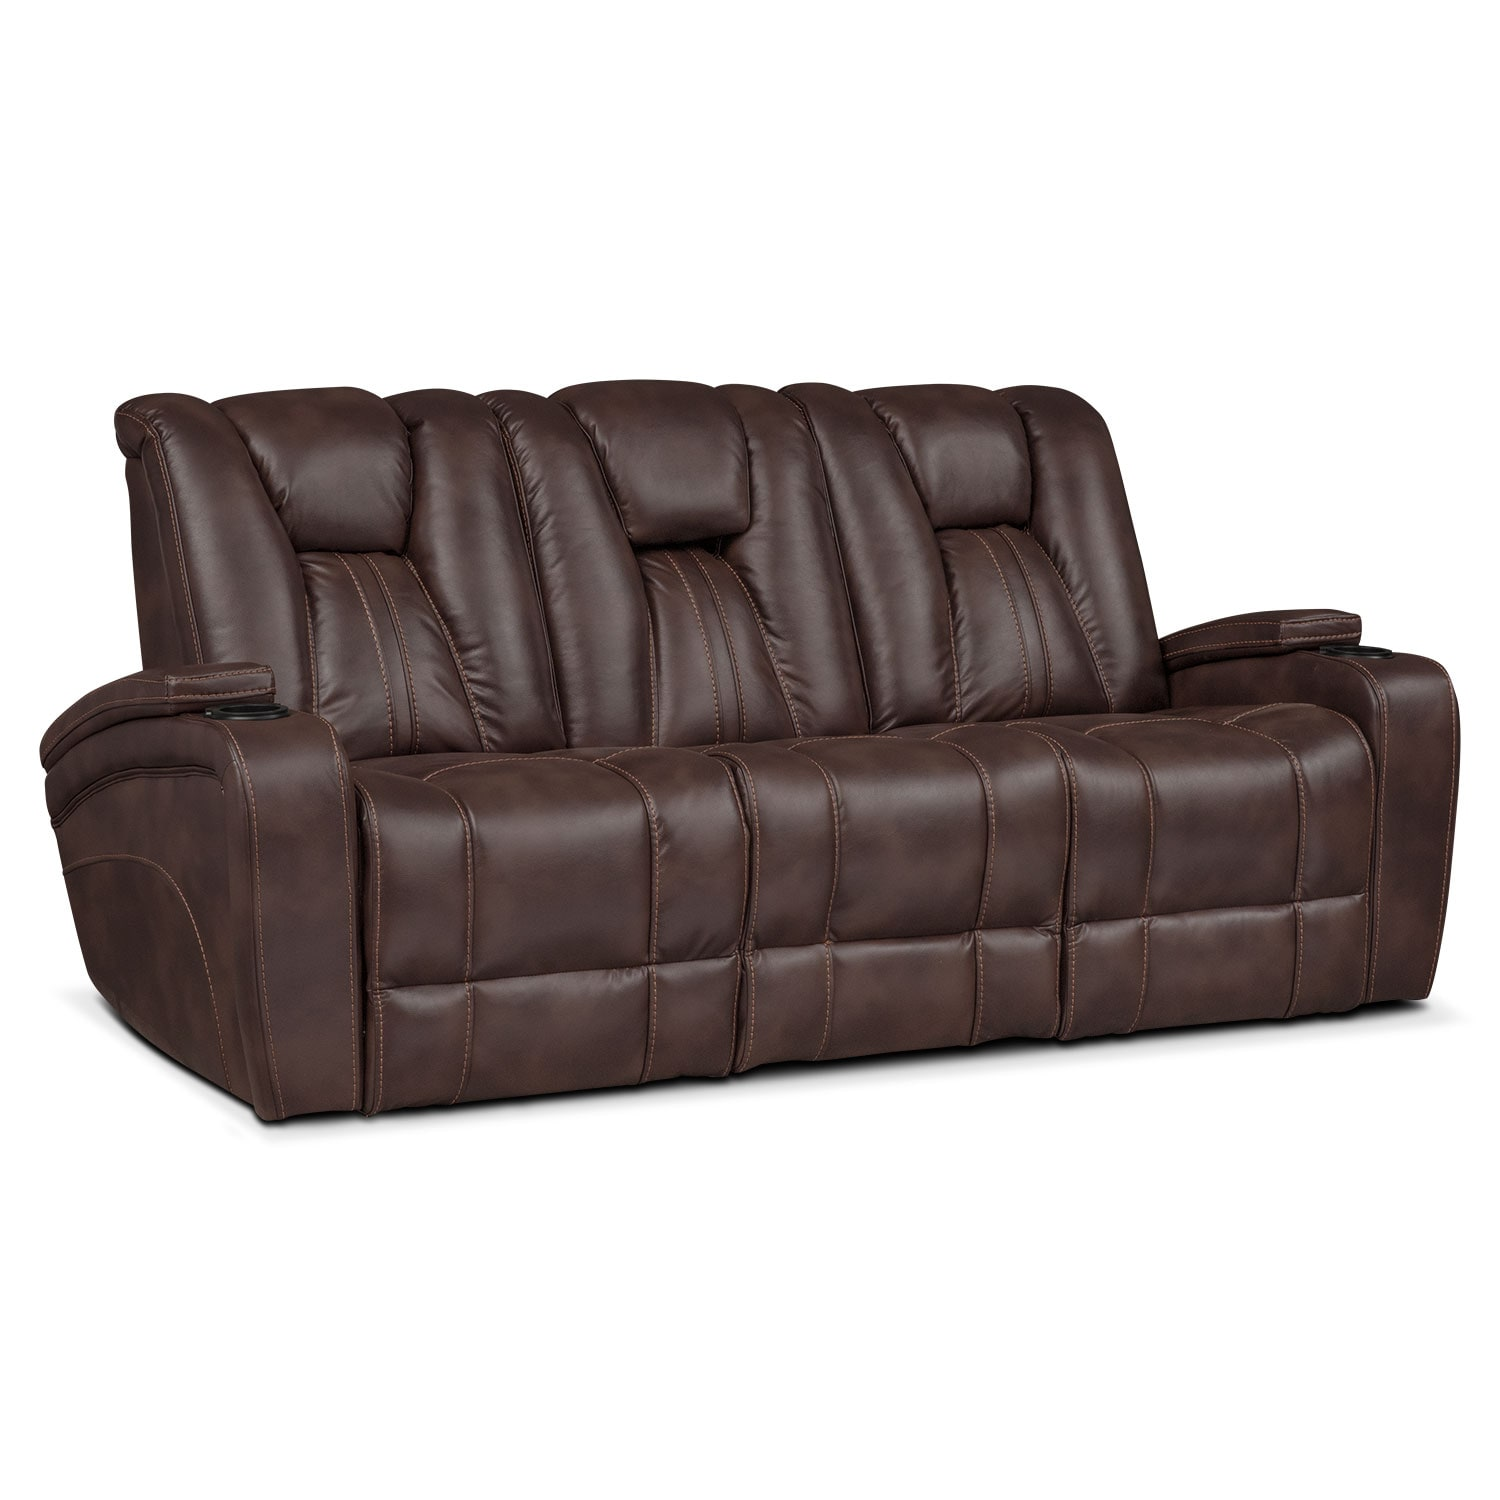 Superieur Pulsar Power Reclining Sofa, Power Reclining Loveseat And Power Recliner  Set   Brown